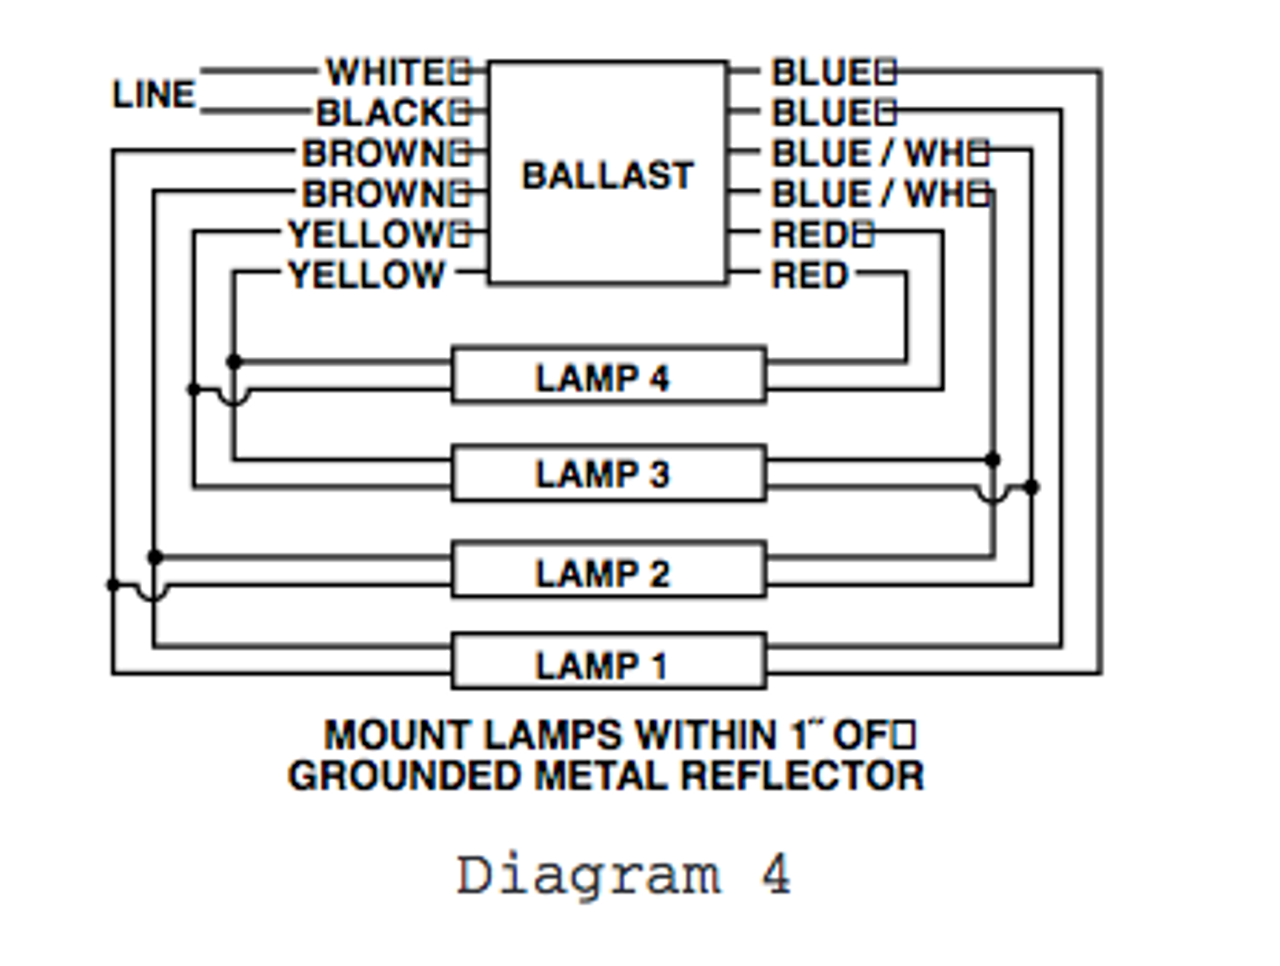 T12 Ballast Wiring Diagram 1 Lamp And 2 Lamp T12ho Magnetic Fluorescent Ballast Wiring Diagrams